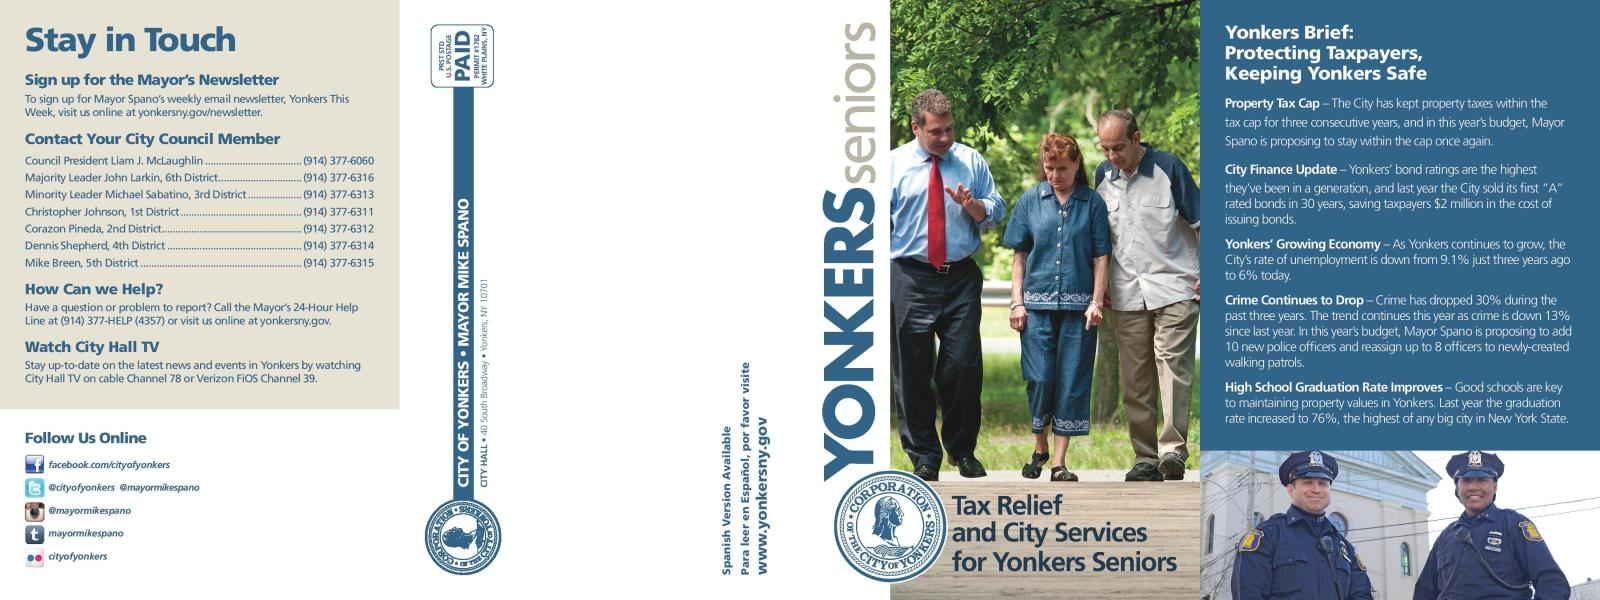 Office for the Aging | City of Yonkers, NY